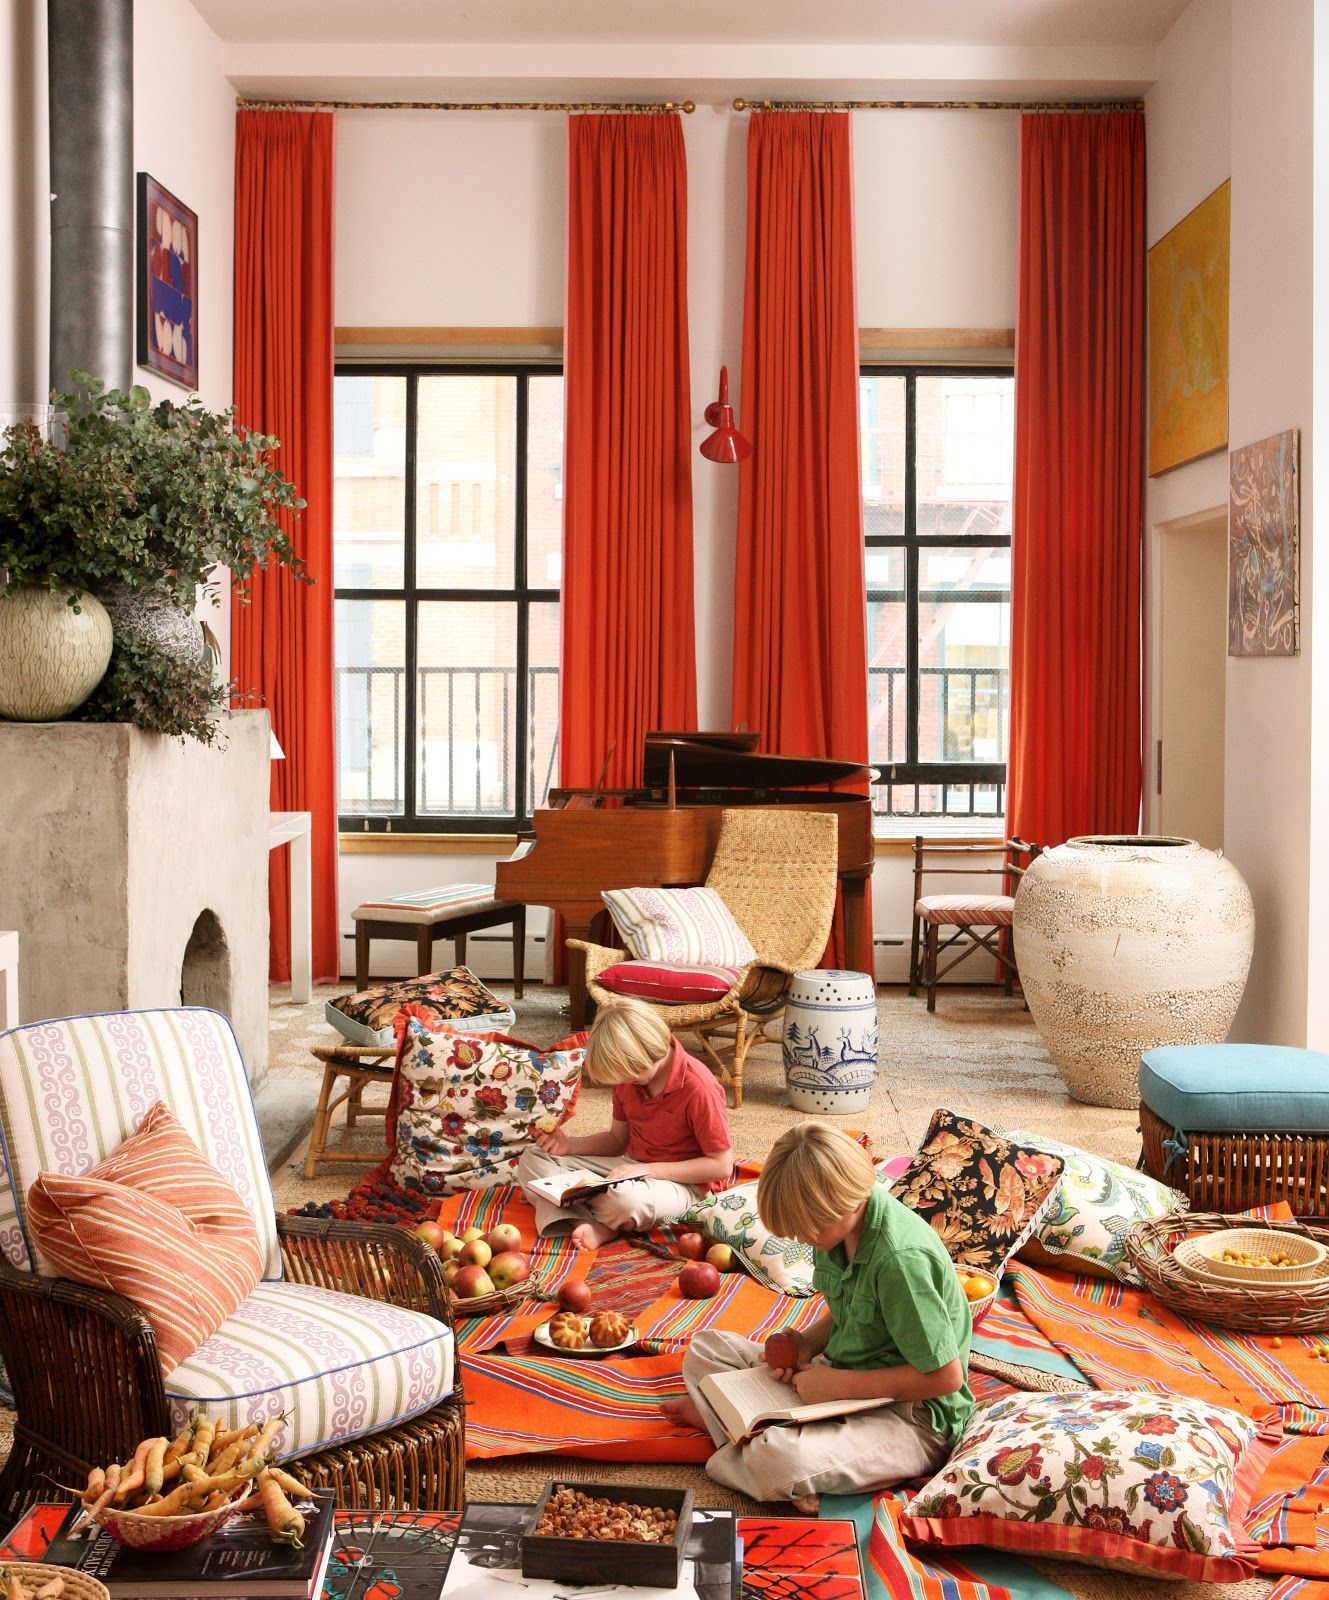 Curtains Inspirationorange Curtains For Snazzy Window Treatment Interesting Orange Curtains For Living Room Inspiration Design